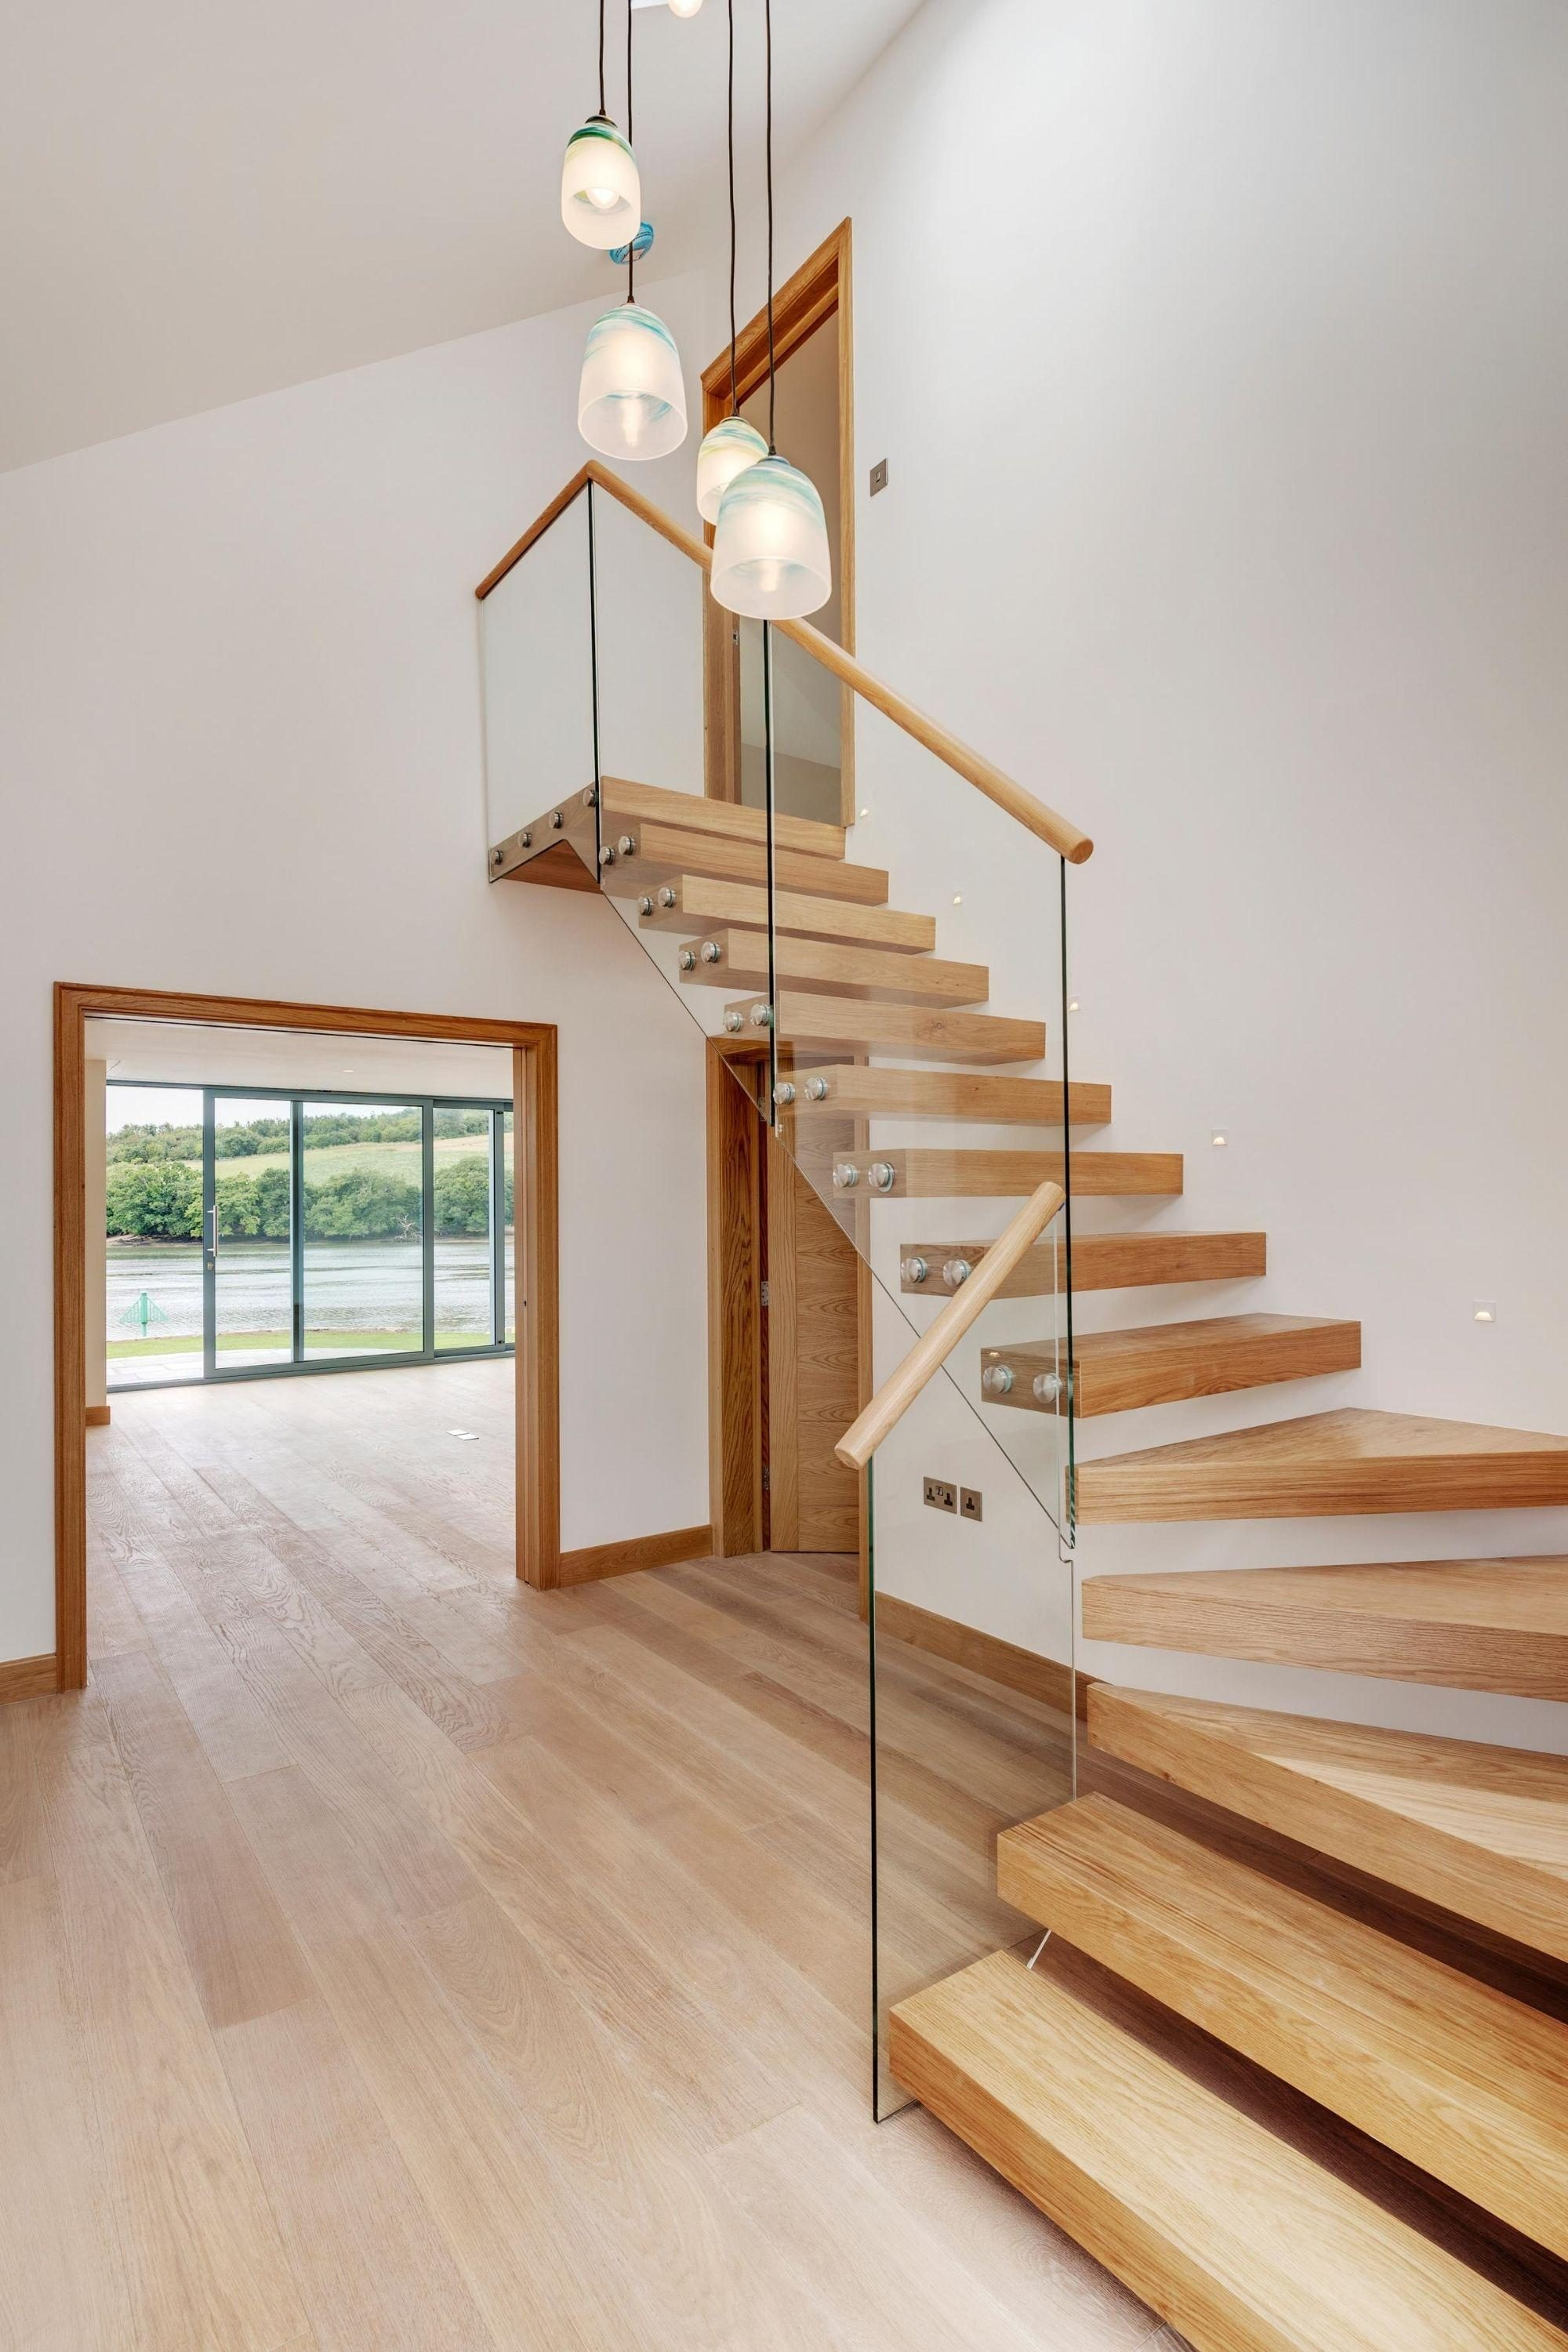 Cantilever or floating stairs